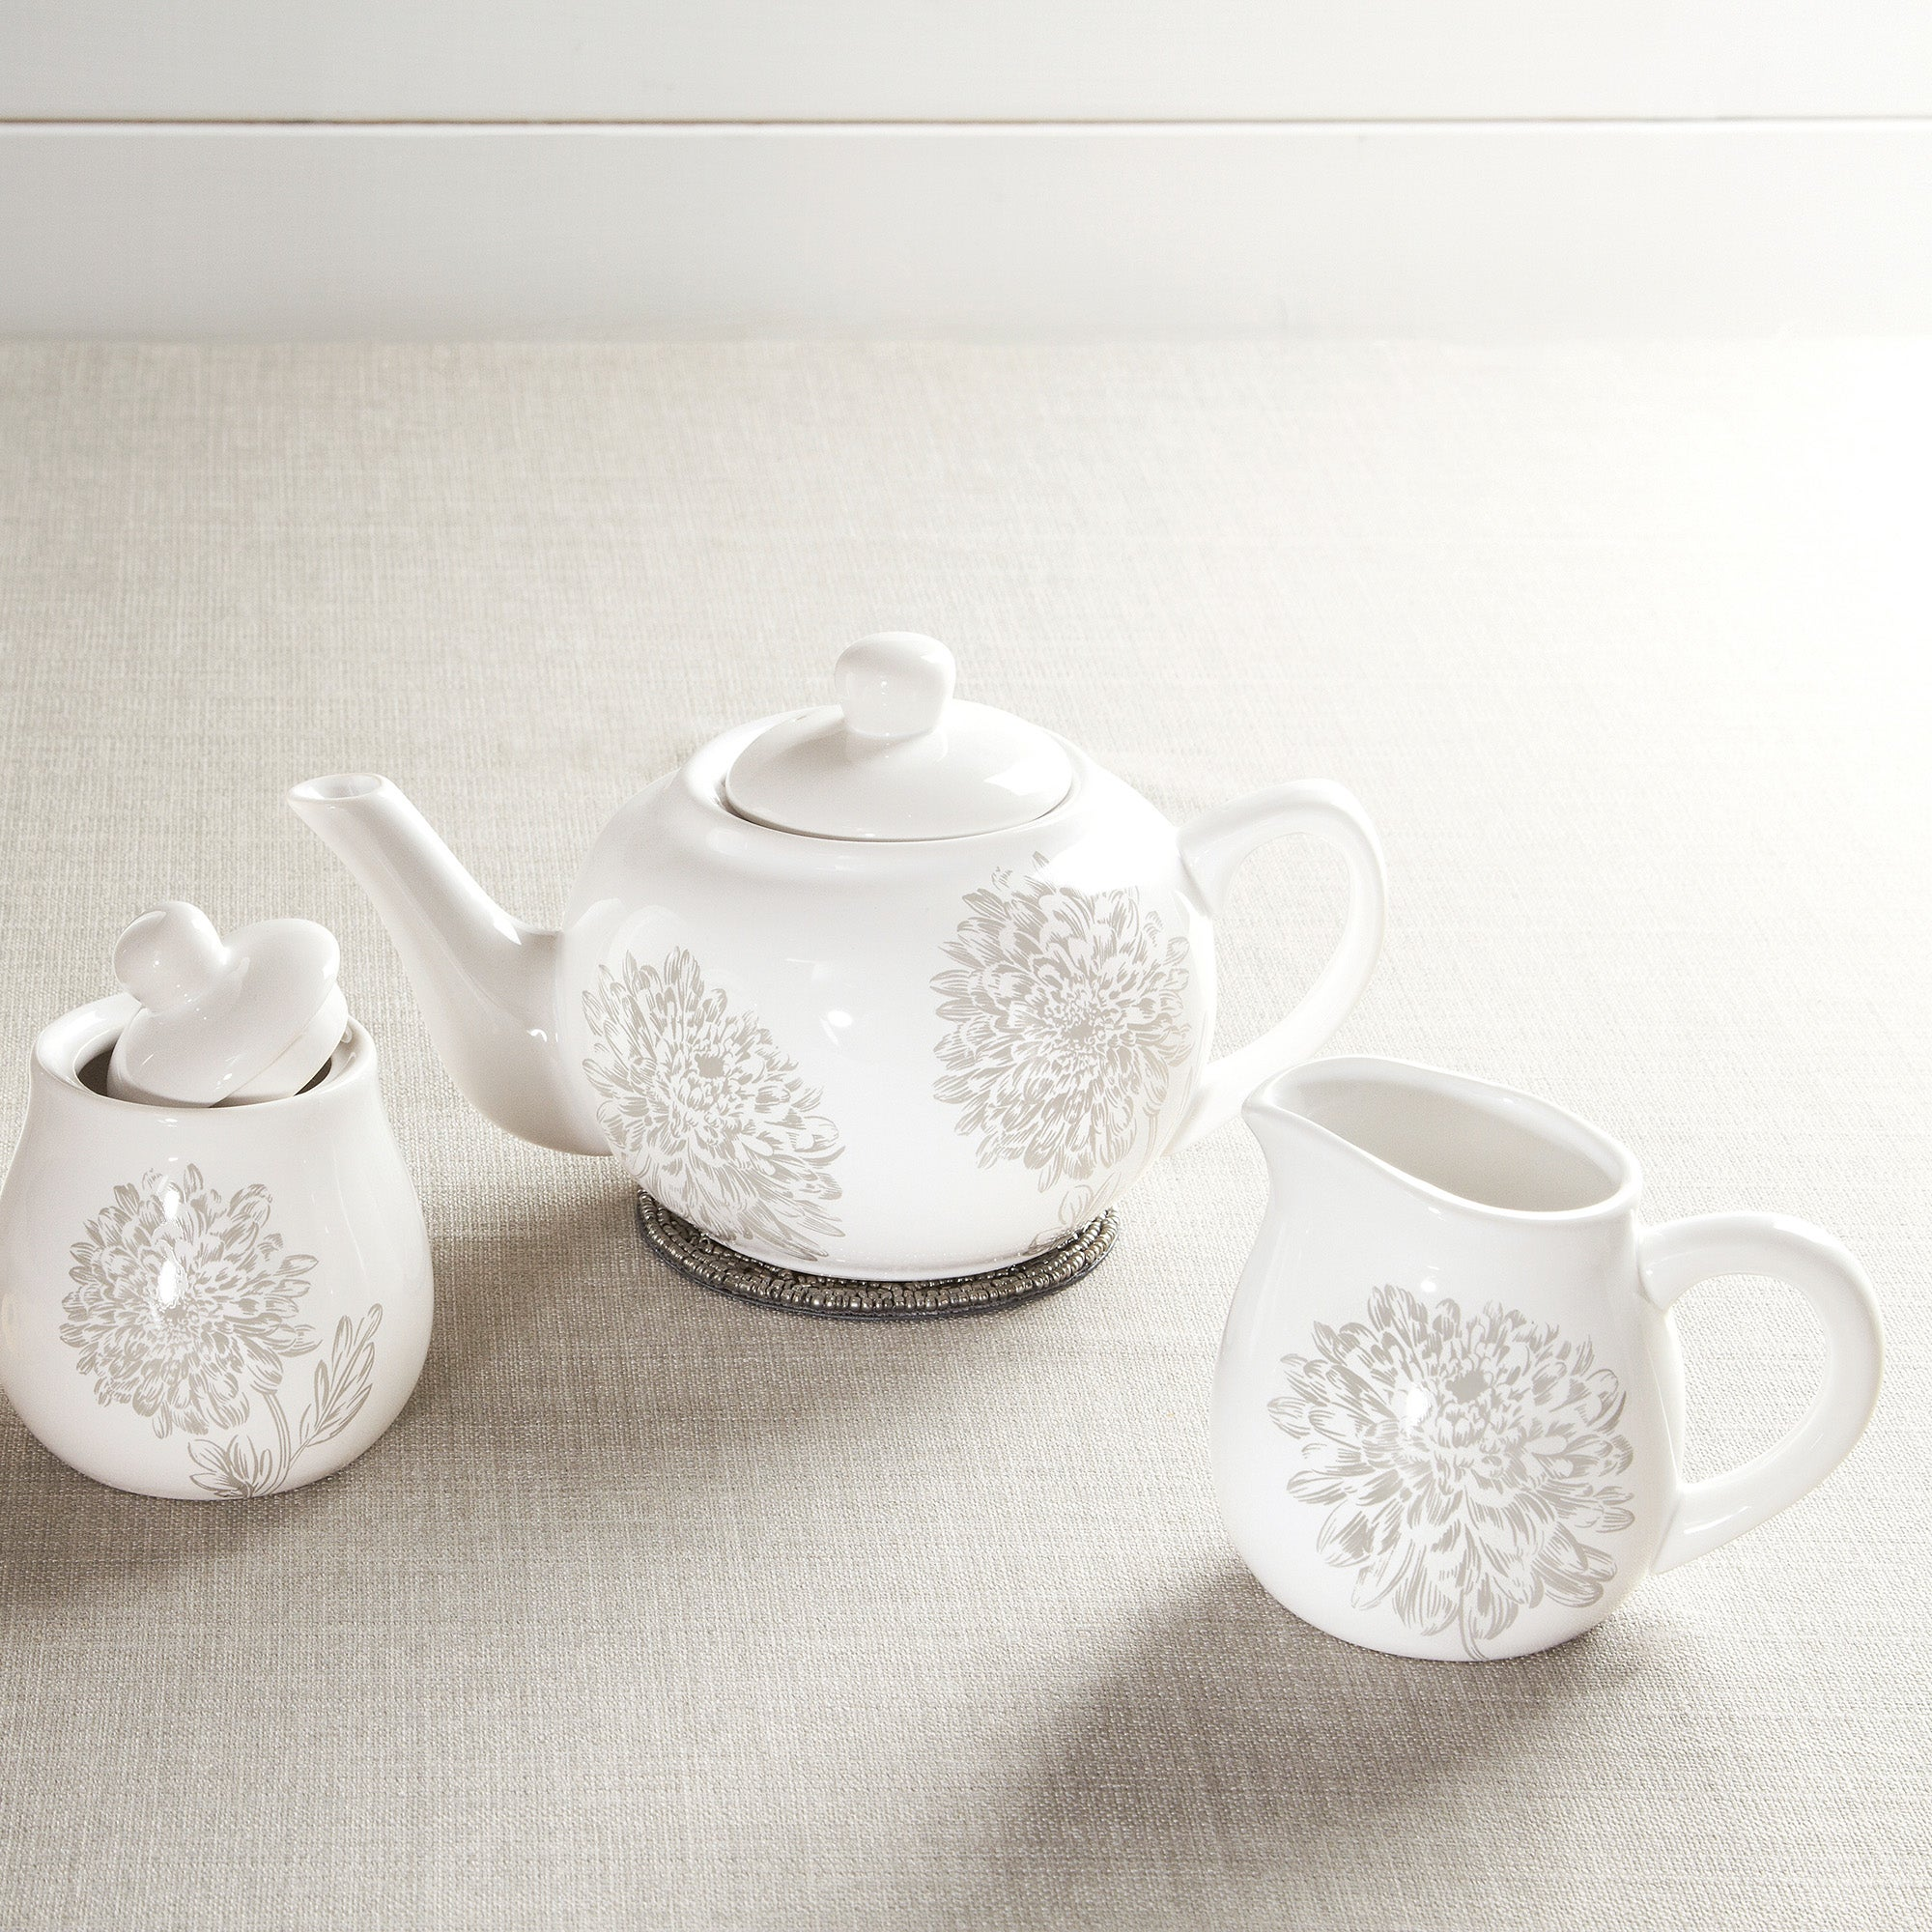 Etched Floral Dinnerware Collection